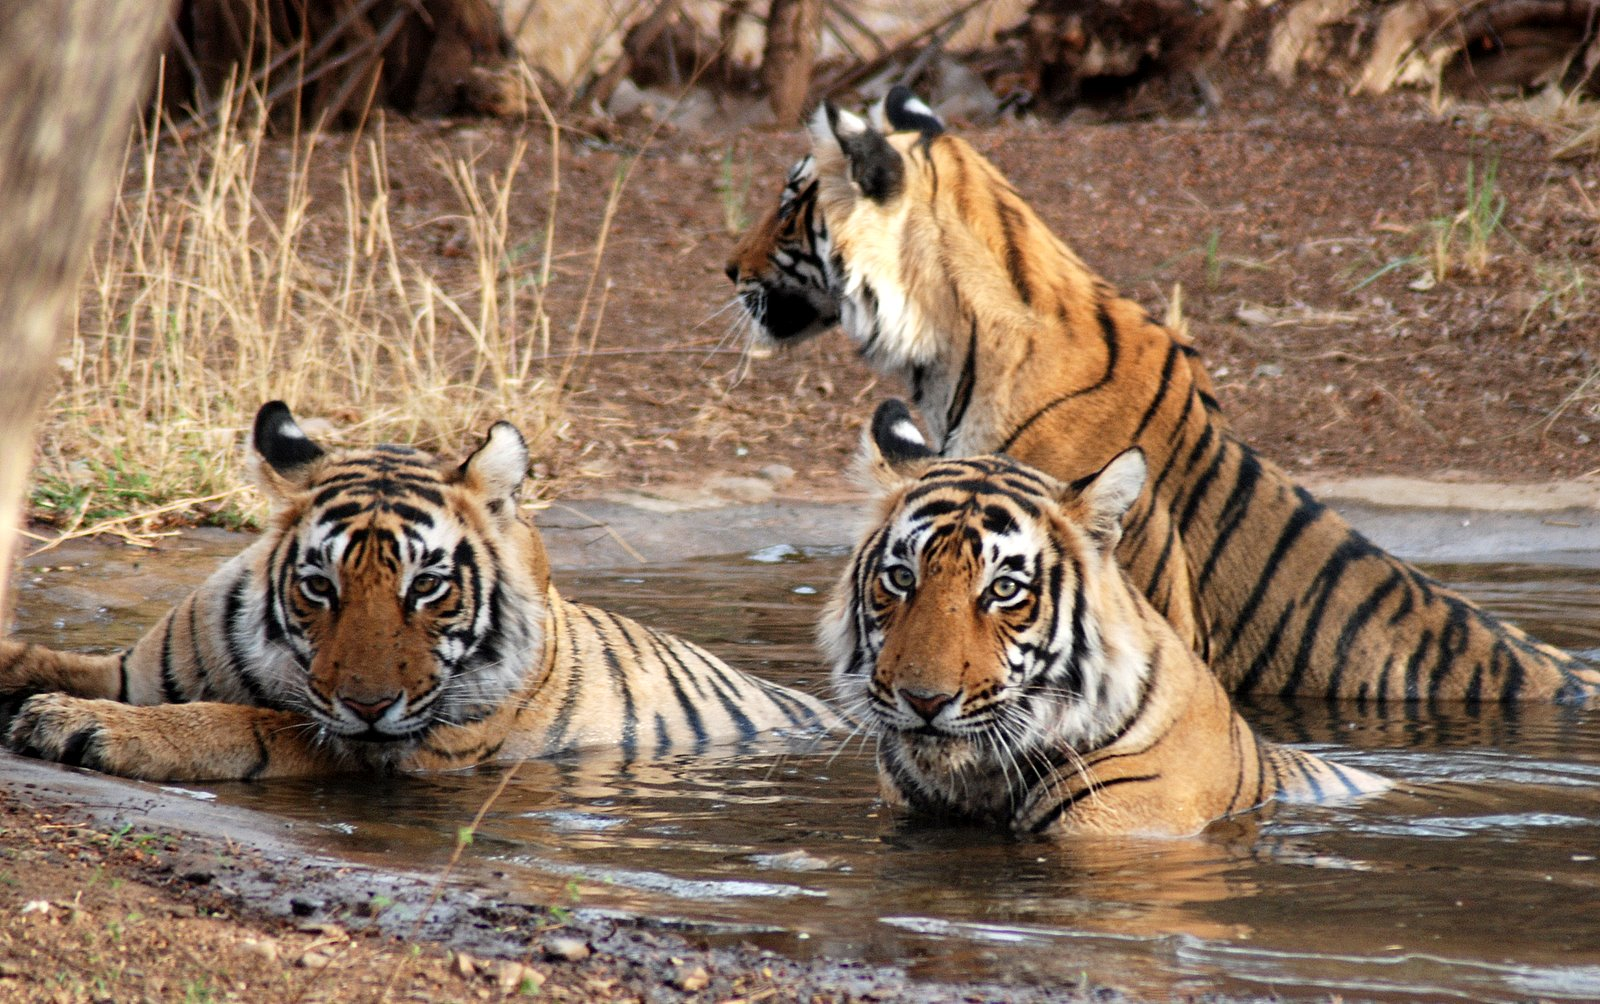 Sunderbans National Park & Tiger Reserve